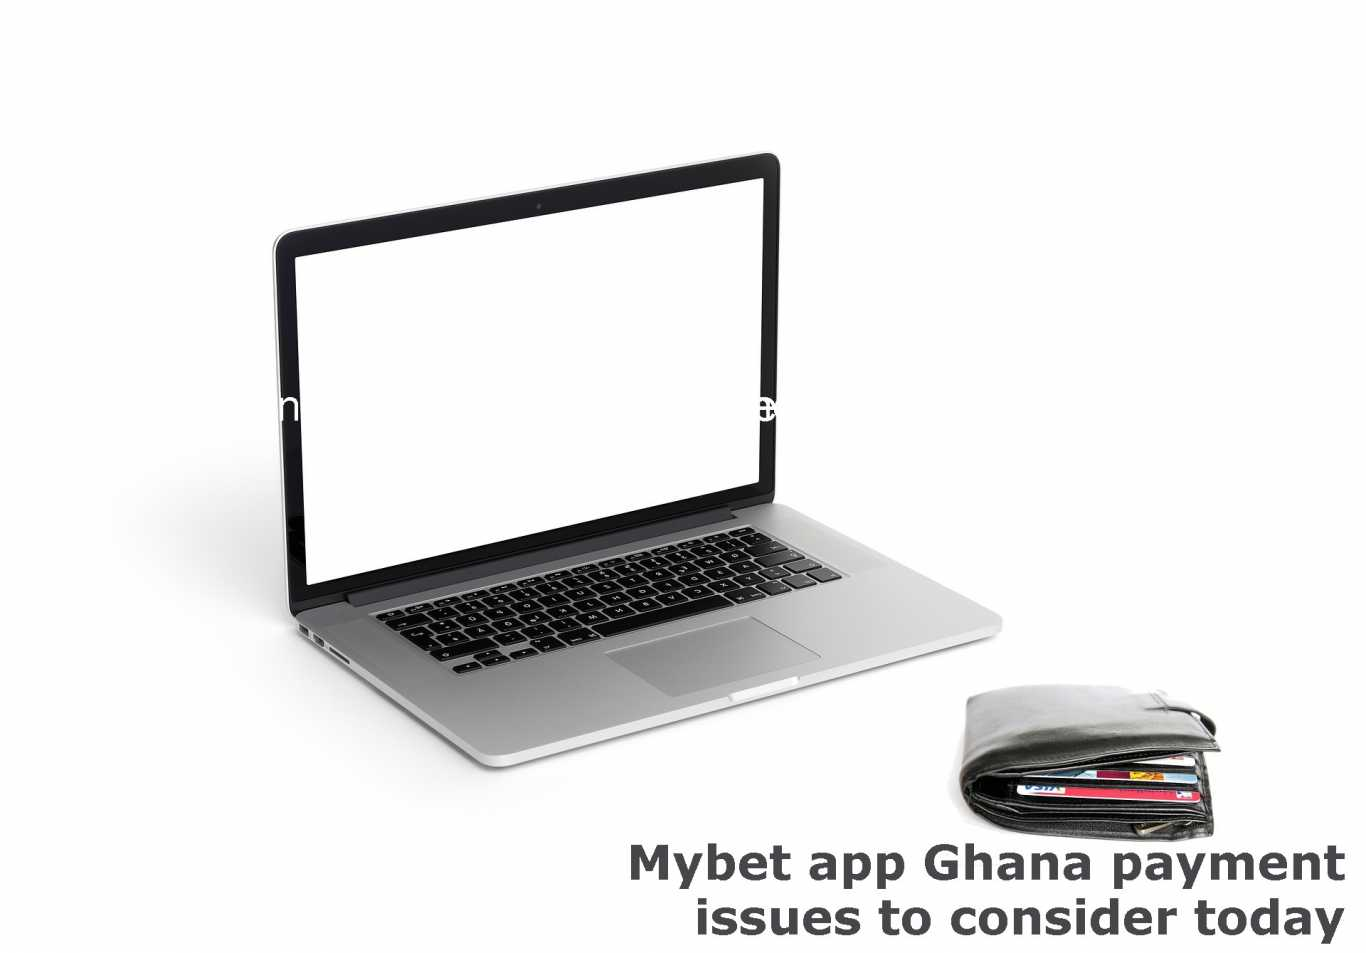 Mybet app Ghana payment issues to consider today